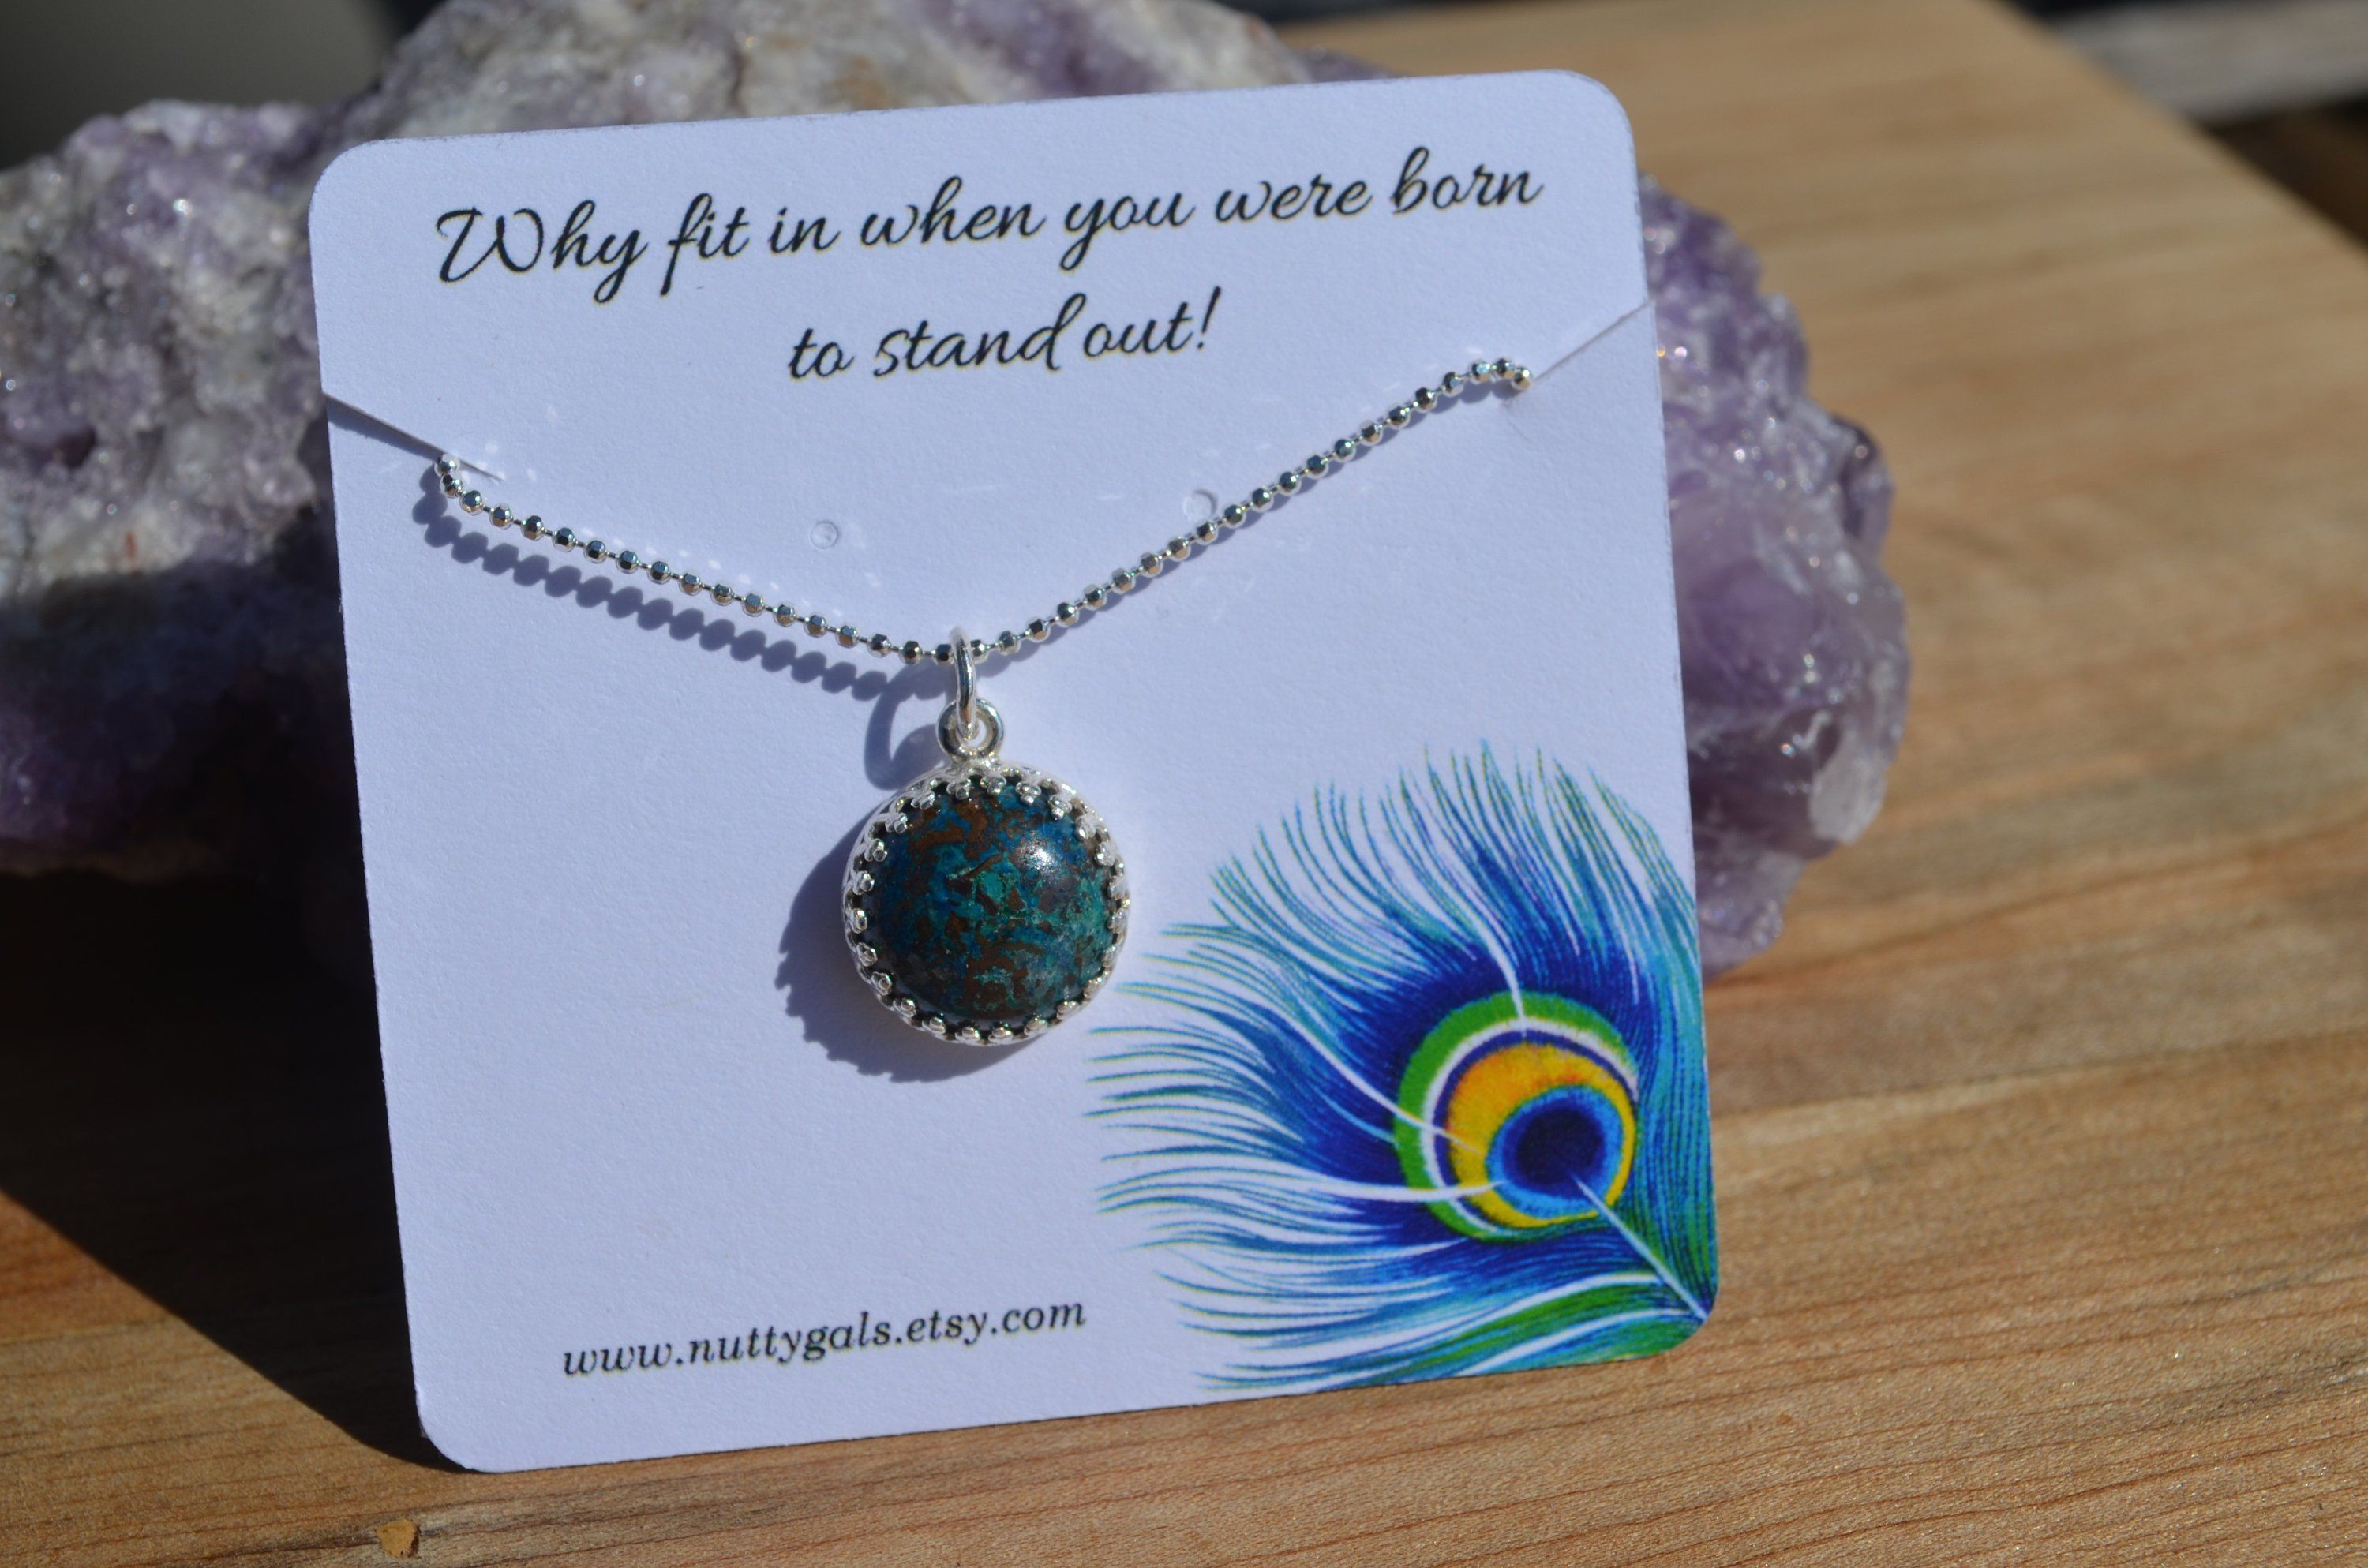 """Pin on Etsy- """"Nuttygals"""" jewelry shop"""